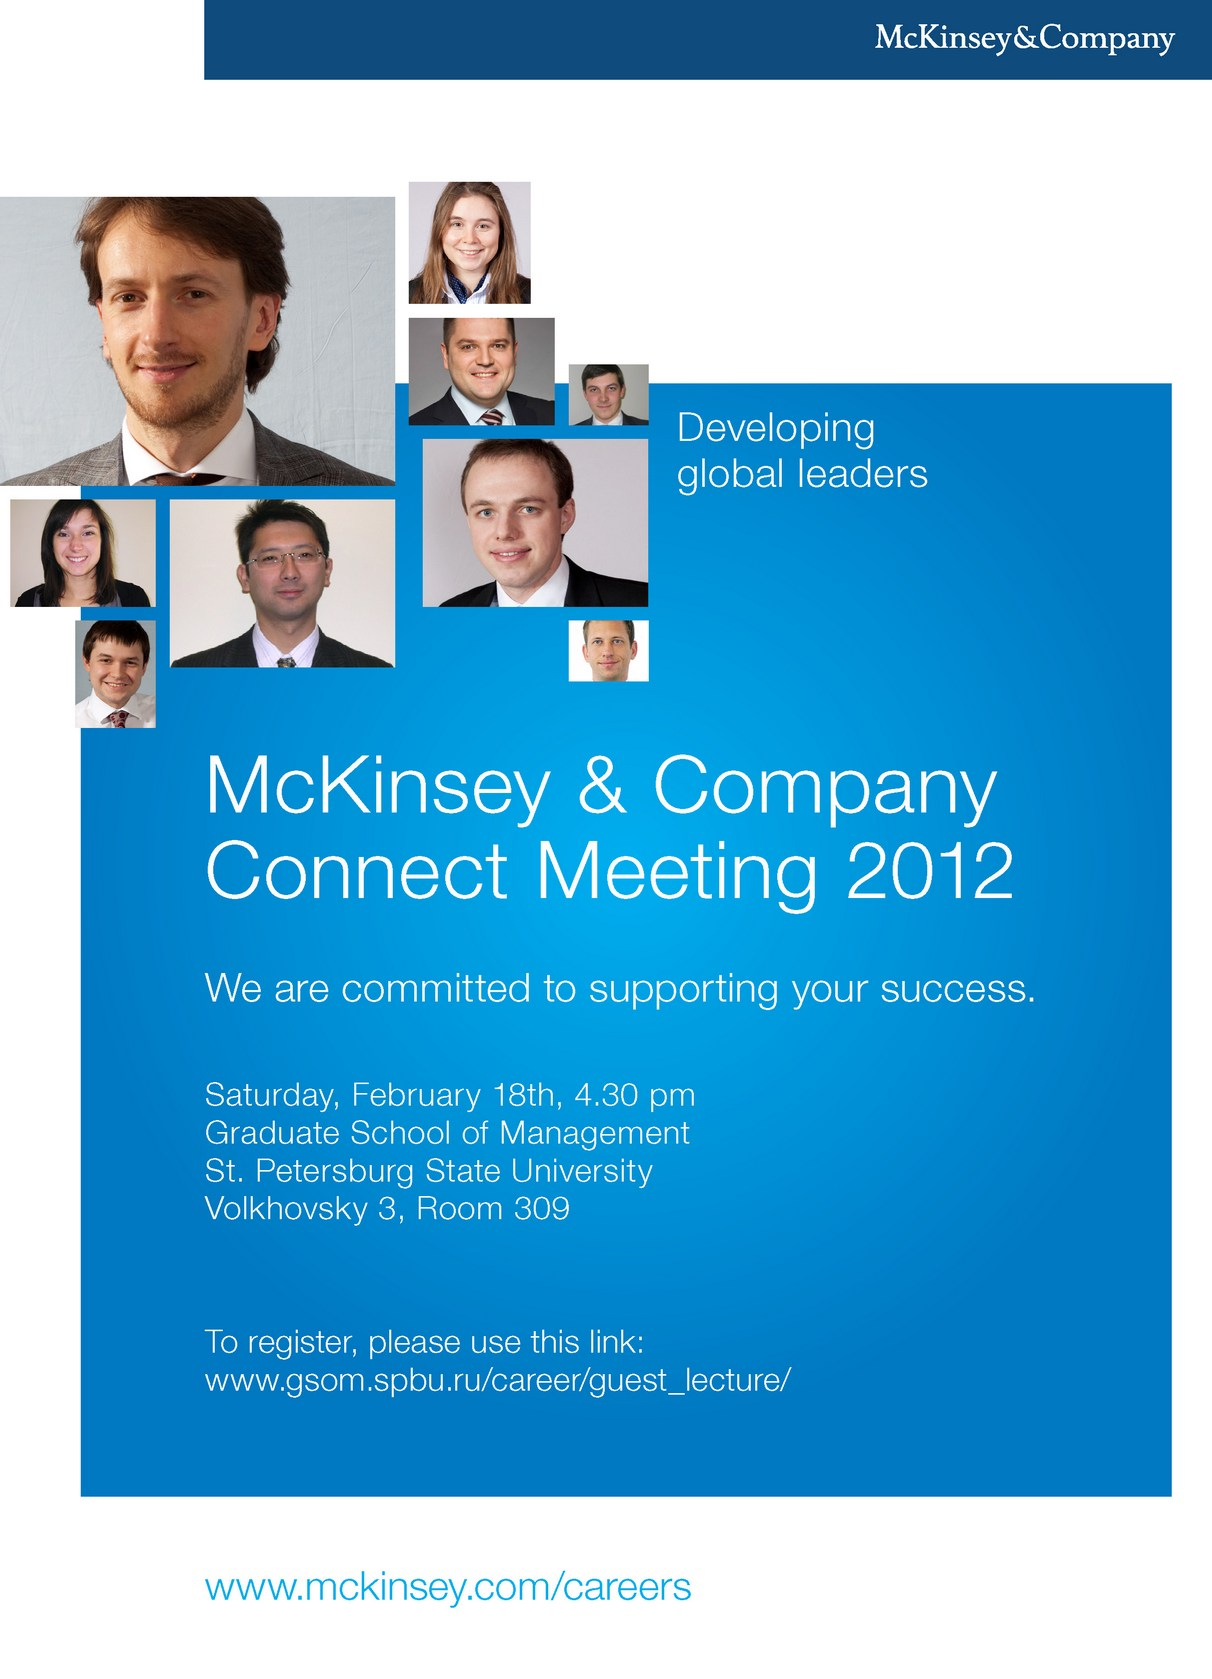 practice case studies mckinsey Mckinsey practice case studies - dissertations and resumes at most affordable prices receive an a+ help even for the hardest assignments expert scholars, quality services, timely delivery and other advantages can be found in our academy writing help.